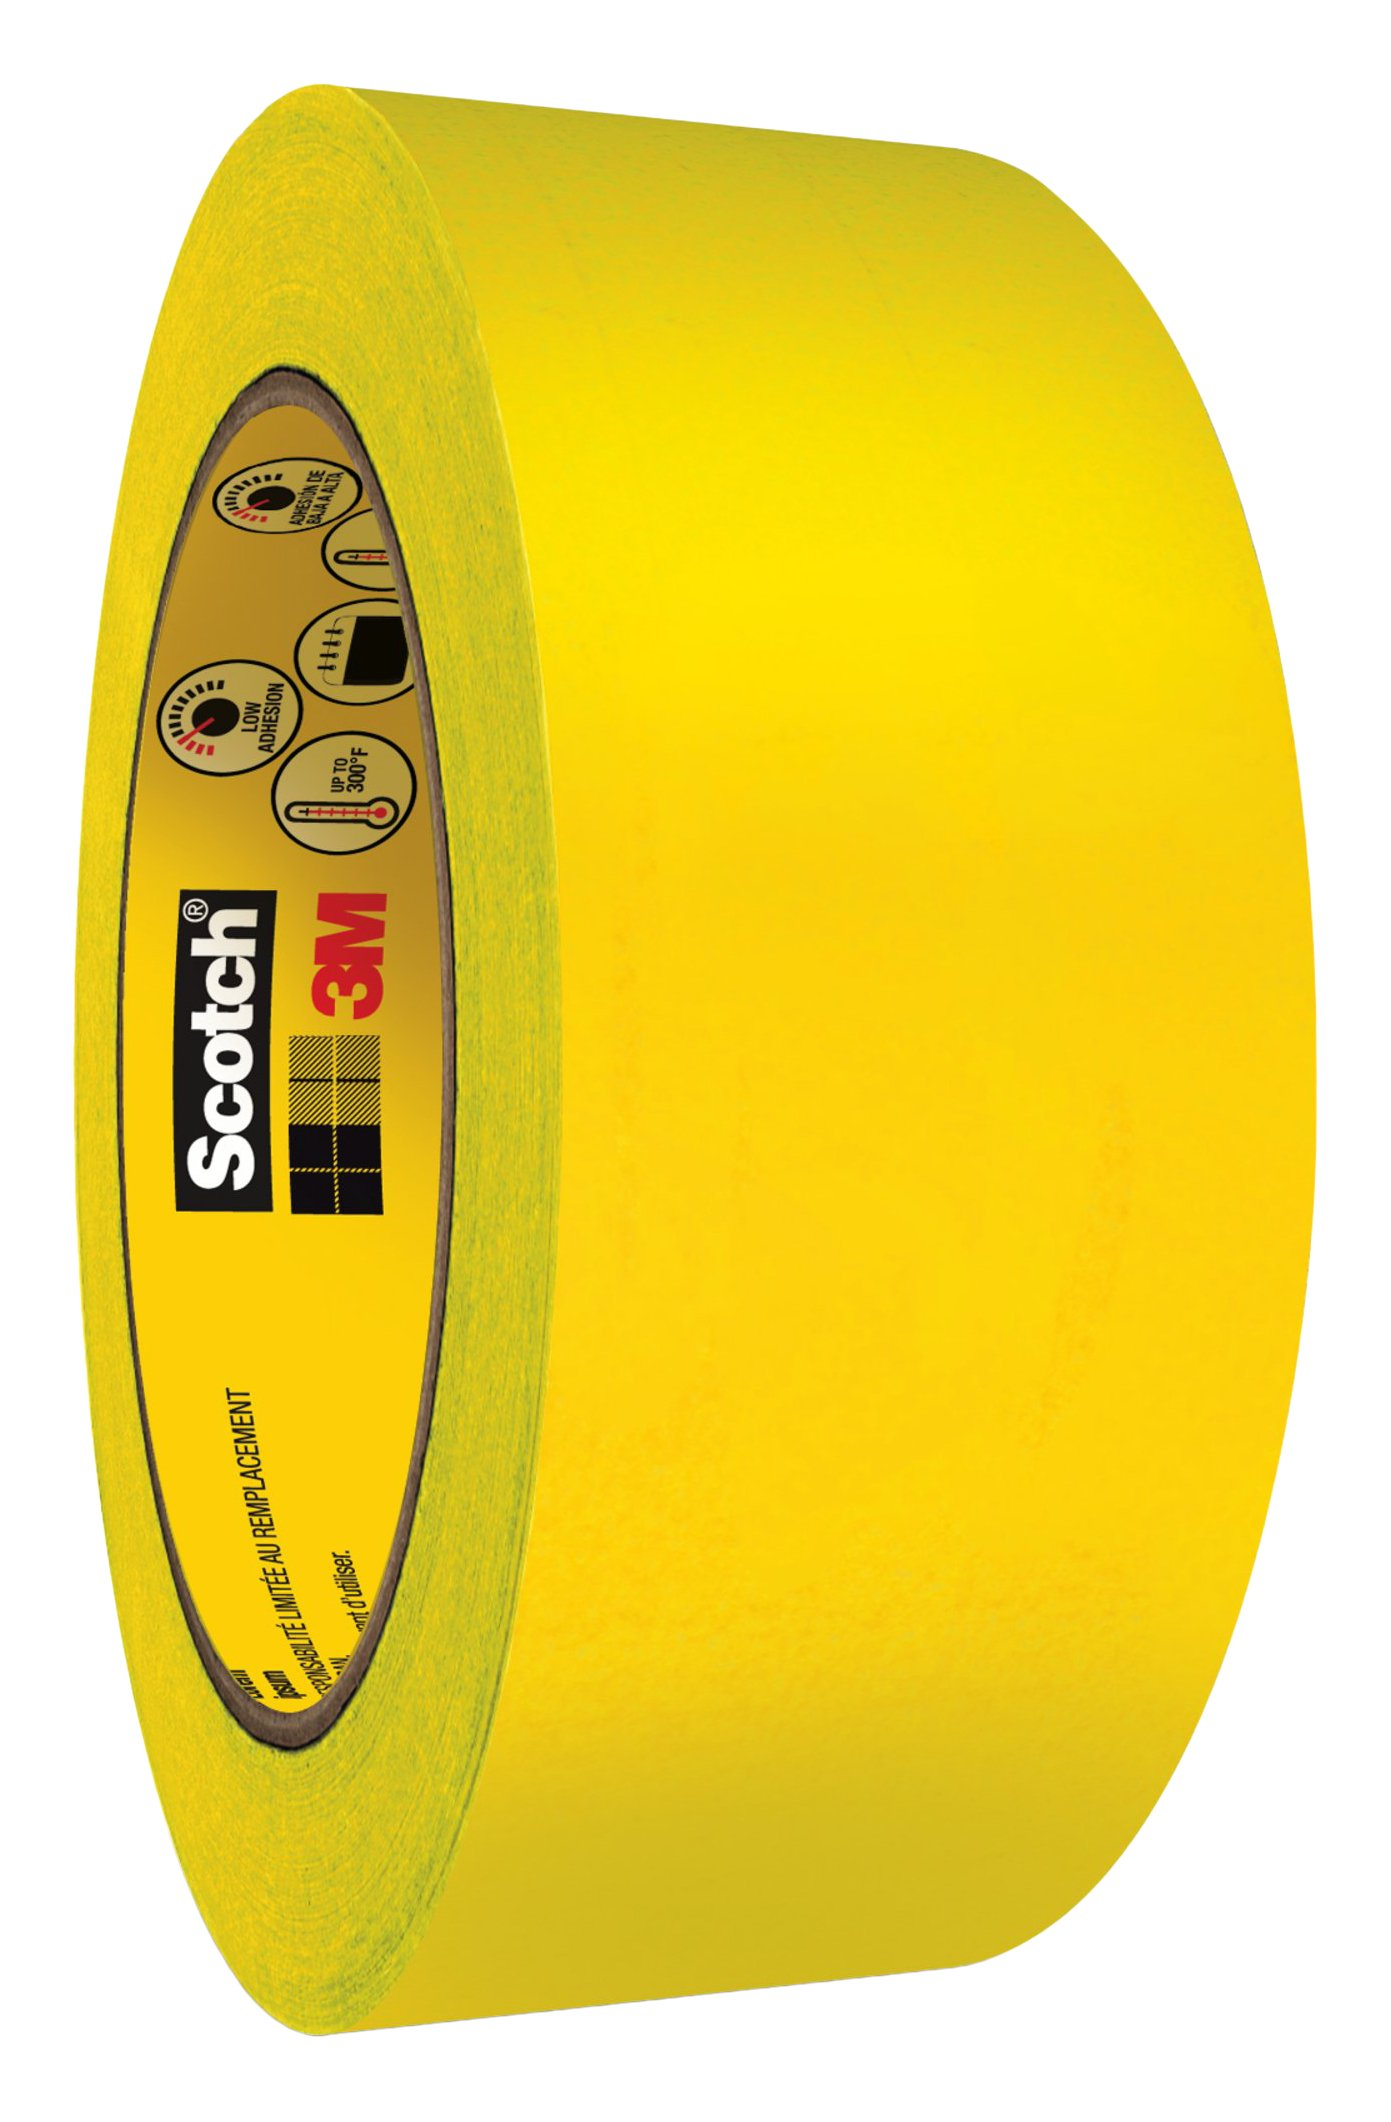 Scotch Ultimate Paint Edge Masking Tape 2460 Gold, 2 in x 60 yd 3.3 mil